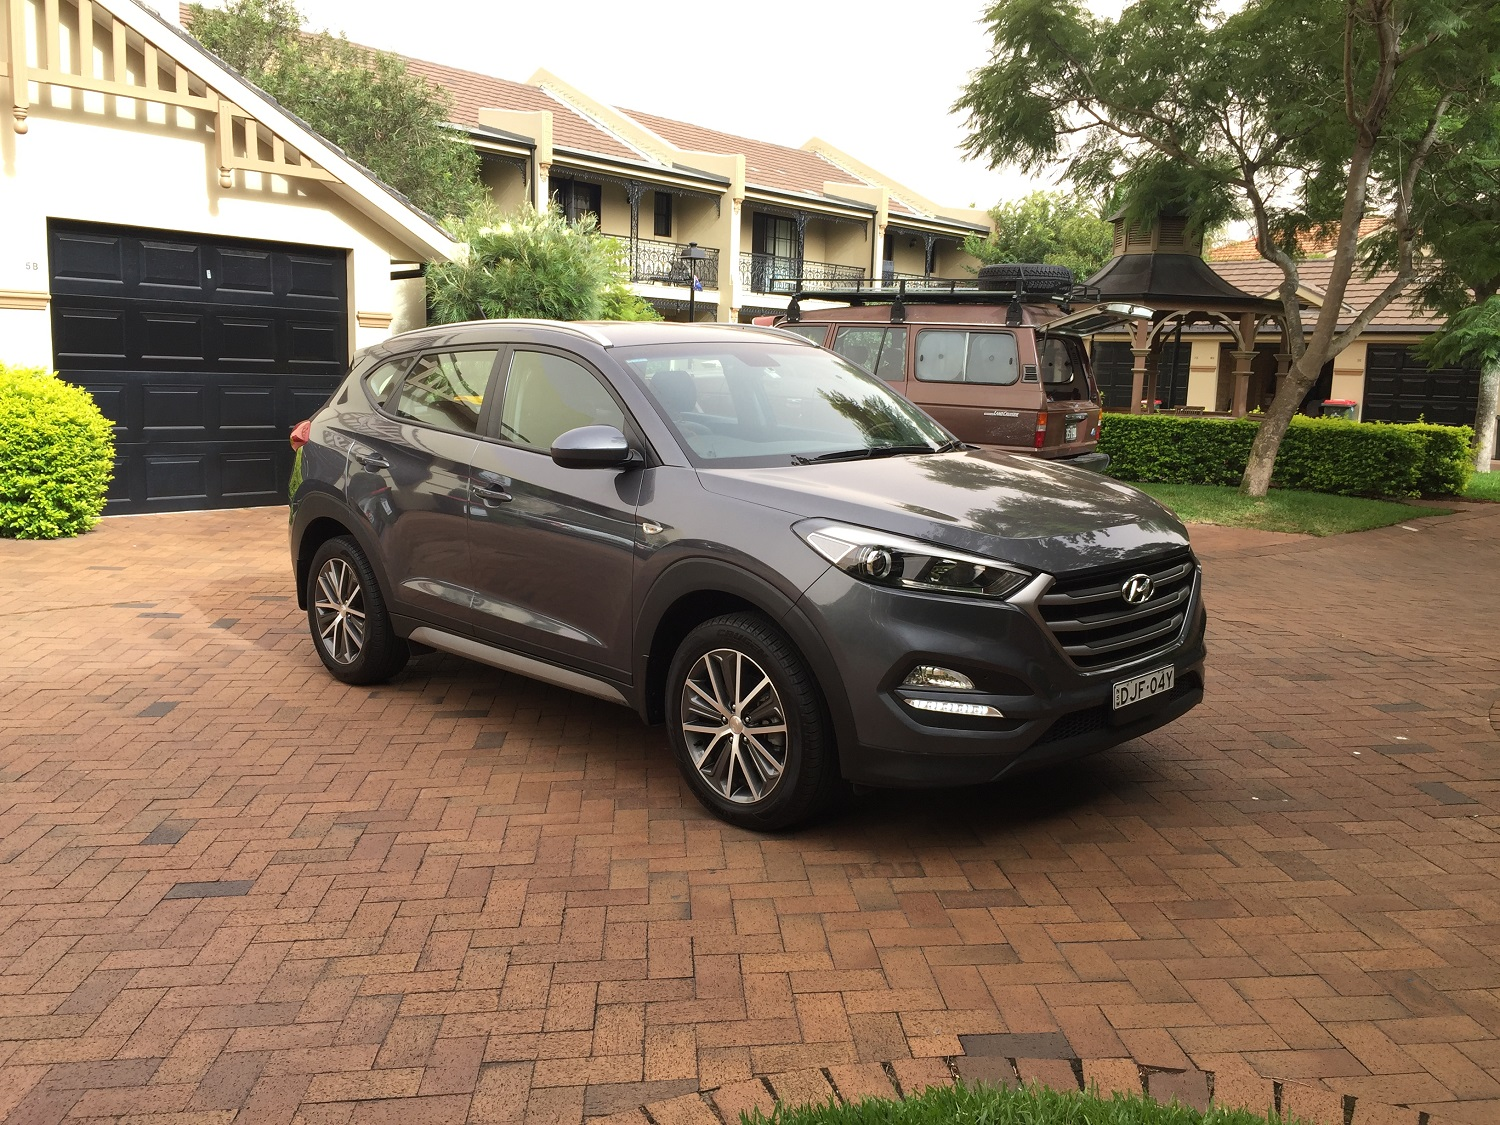 Picture of Shelley's 2016 Hyundai Tucson